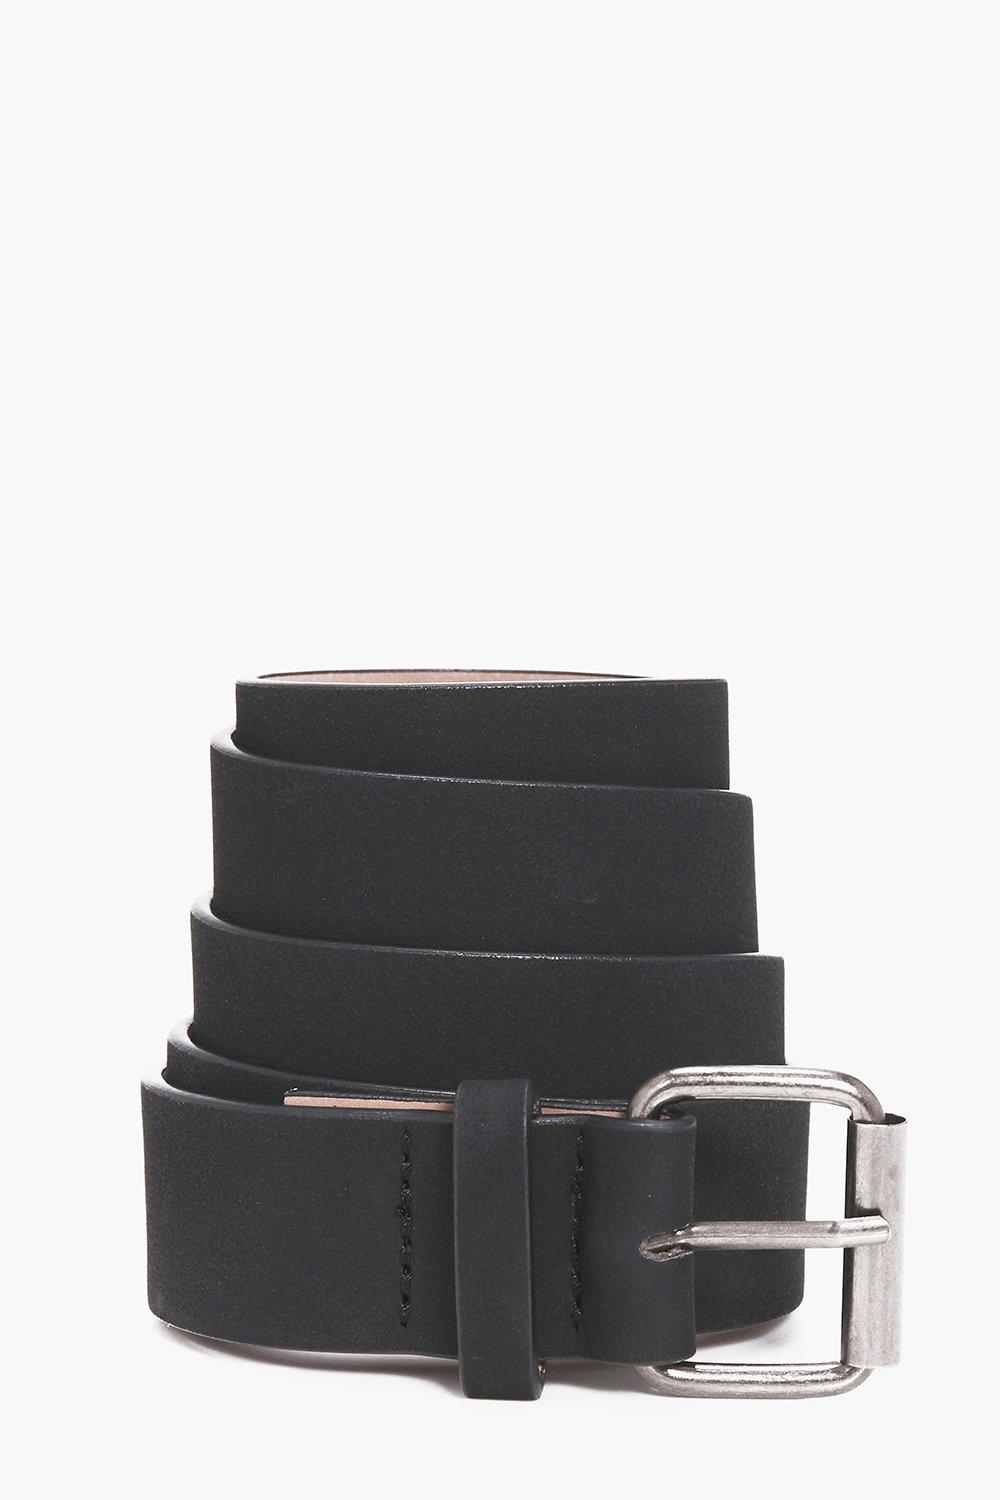 Leather Belt With Metal Buckle - black - Faux Leat